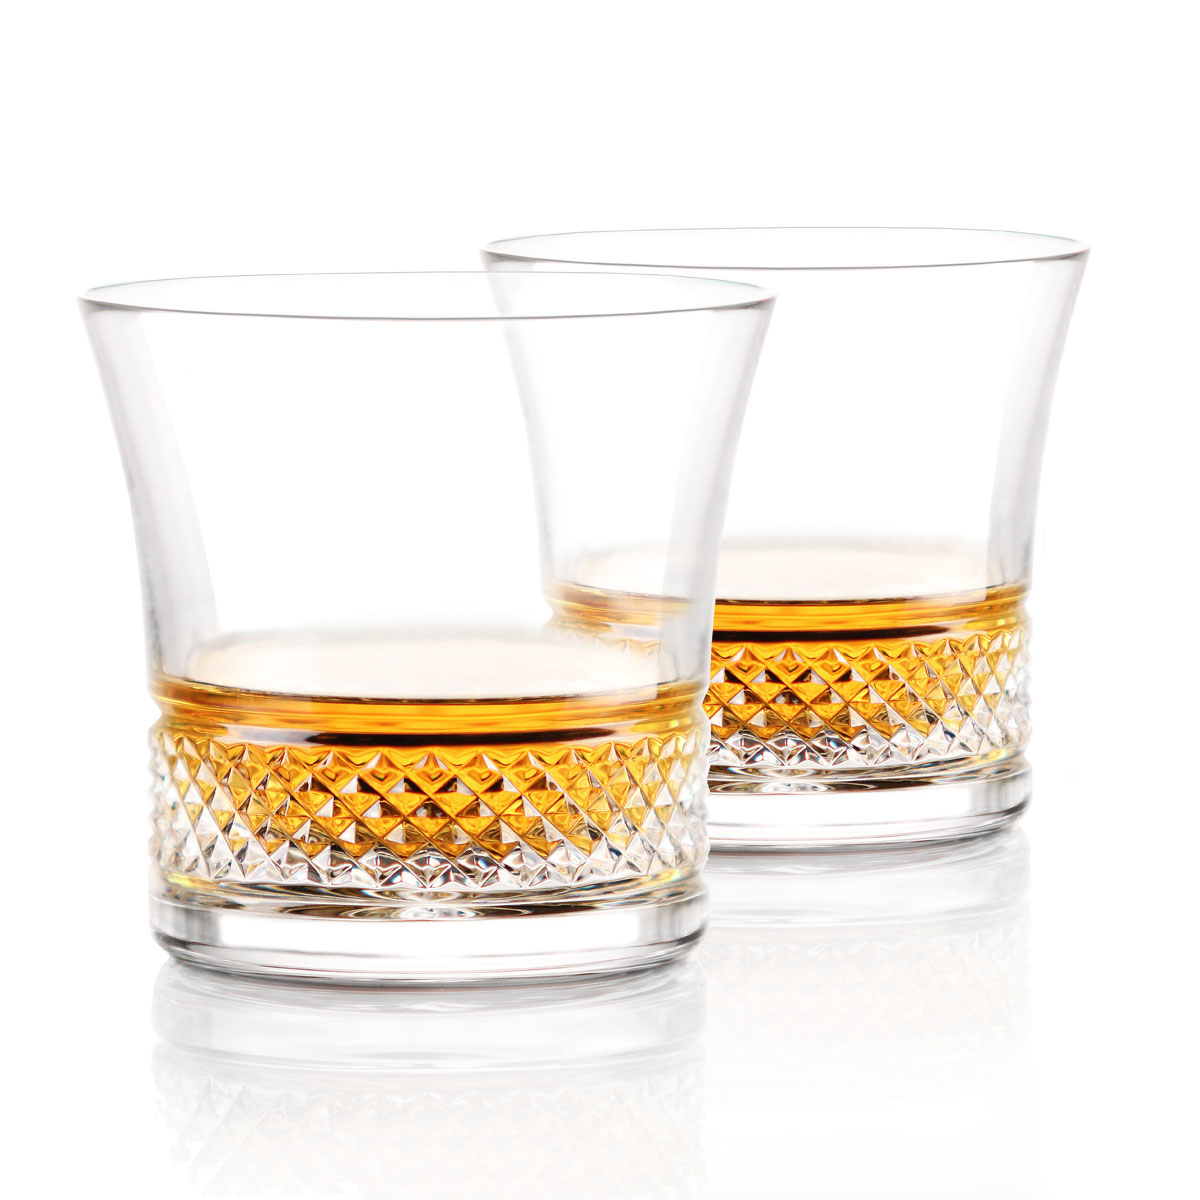 Cashs Ireland, Cooper Regal Scotch Whiskey Glasses, 1+1 Free